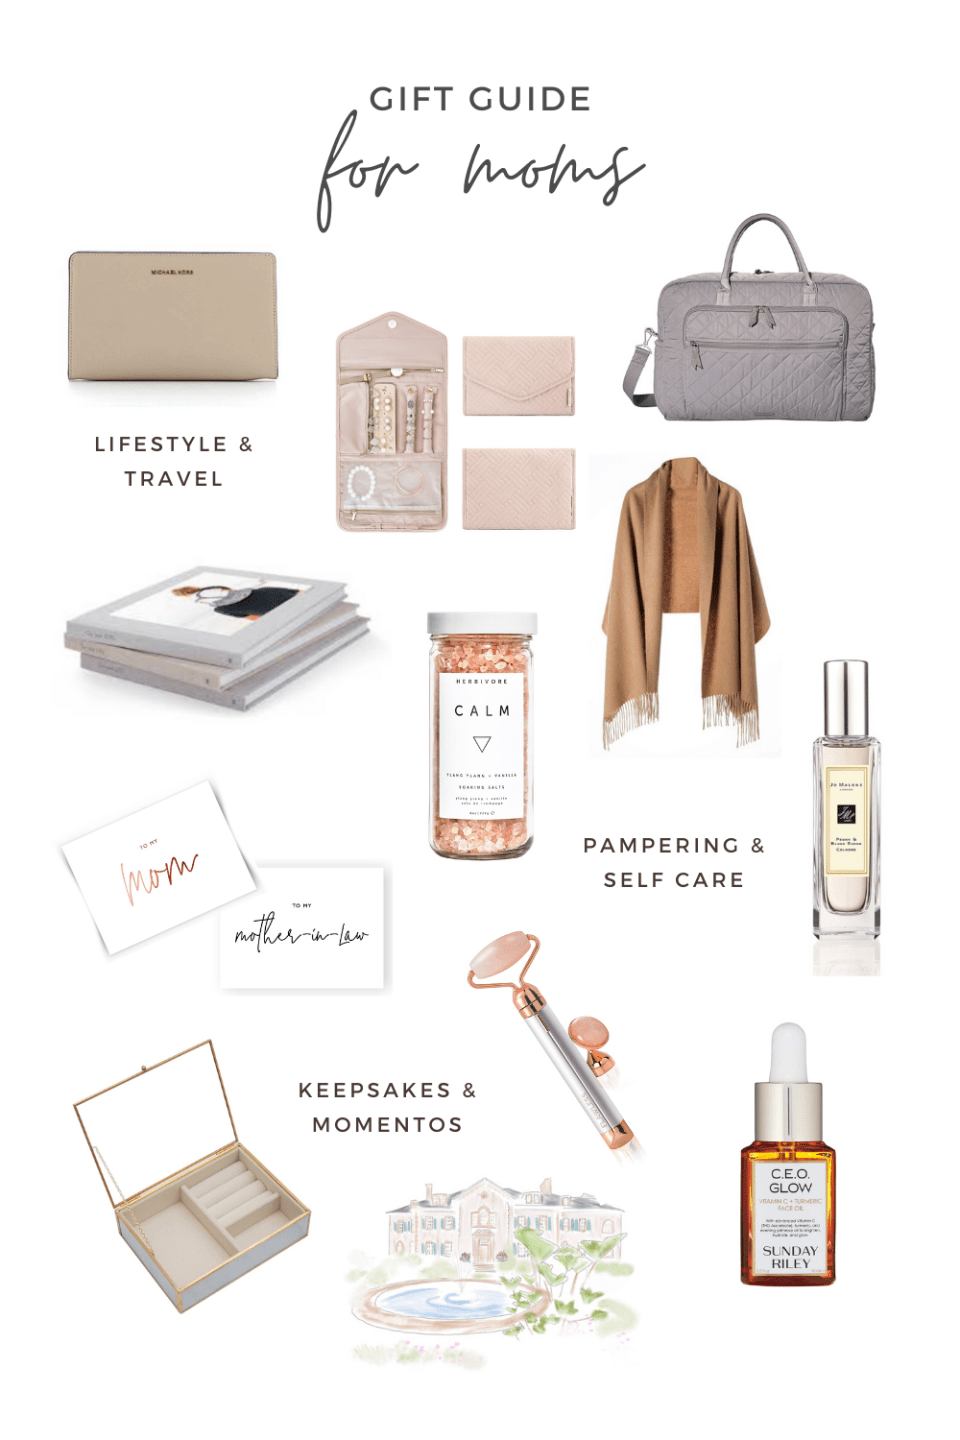 A gift guide for moms - we've rounded up 12 unique gift ideas for all women and moms perfect for the wedding day, self care and even keepsakes after the wedding. Gift ideas perfect for holiday gifts, mother of the bride gifts, mother of the groom gifts or even Mother's Day gifts! | #giftsforher #momgifts #mothersdaygifts